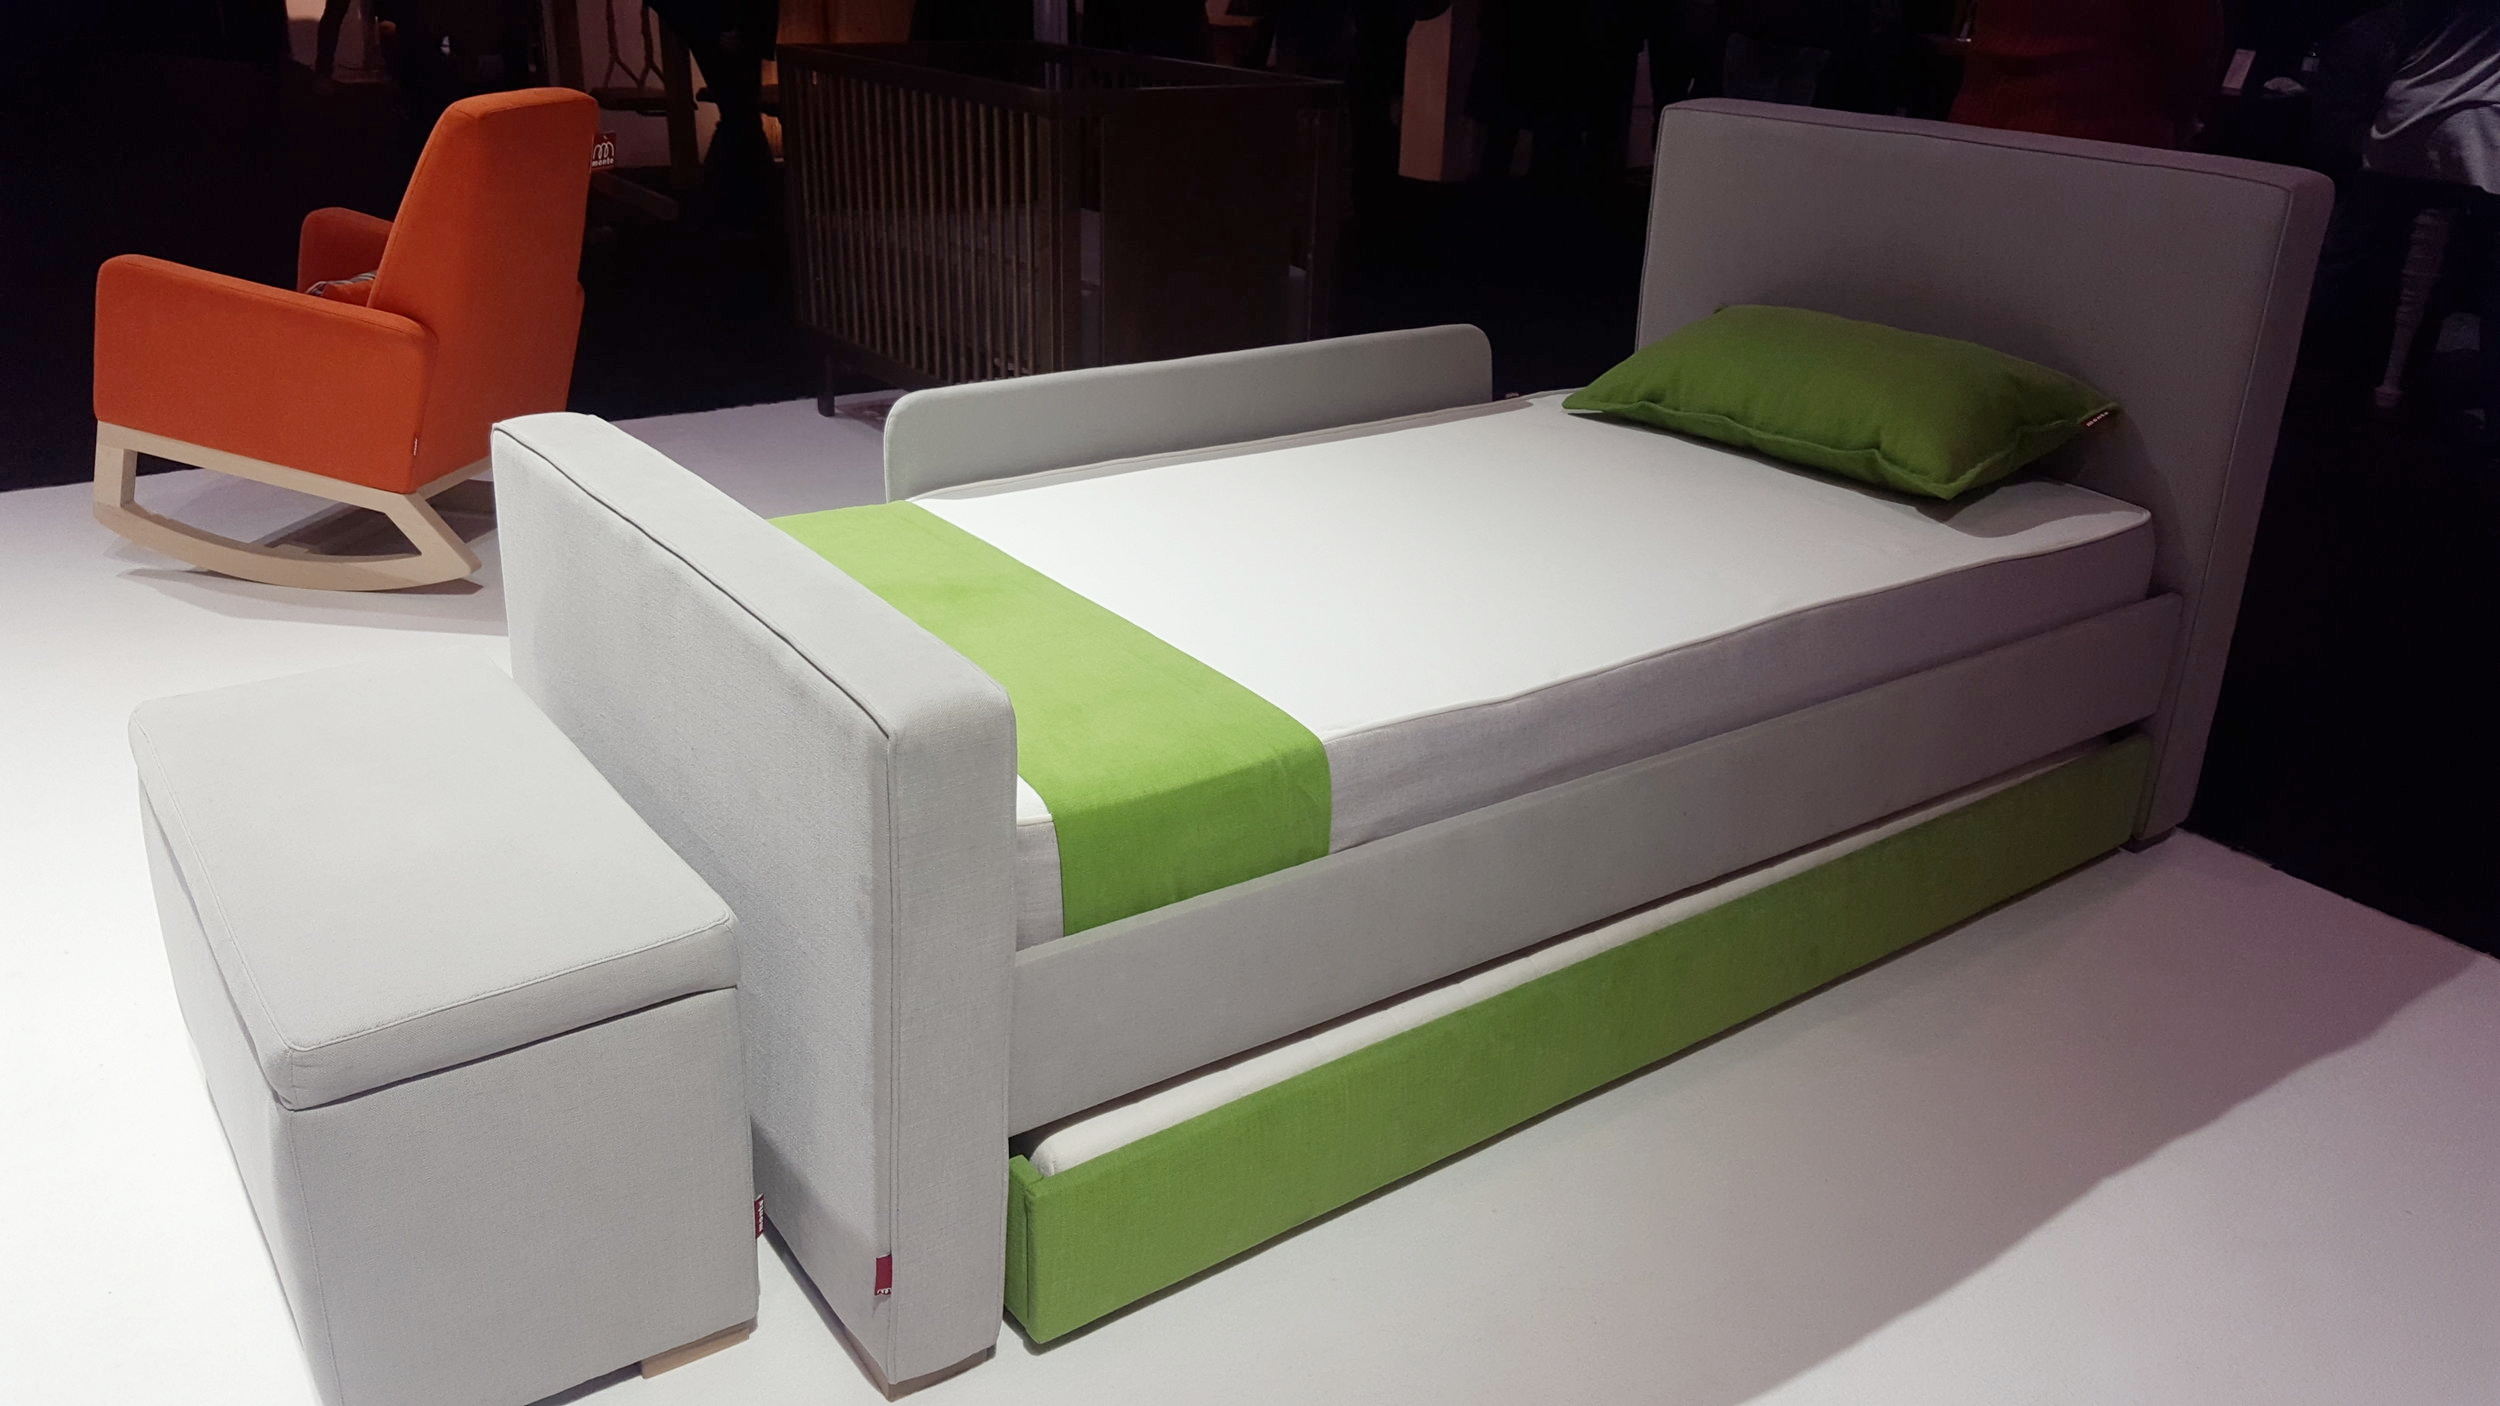 More from Monte - soft sided trundle bed and bench - so sleek for any age child... or adult?